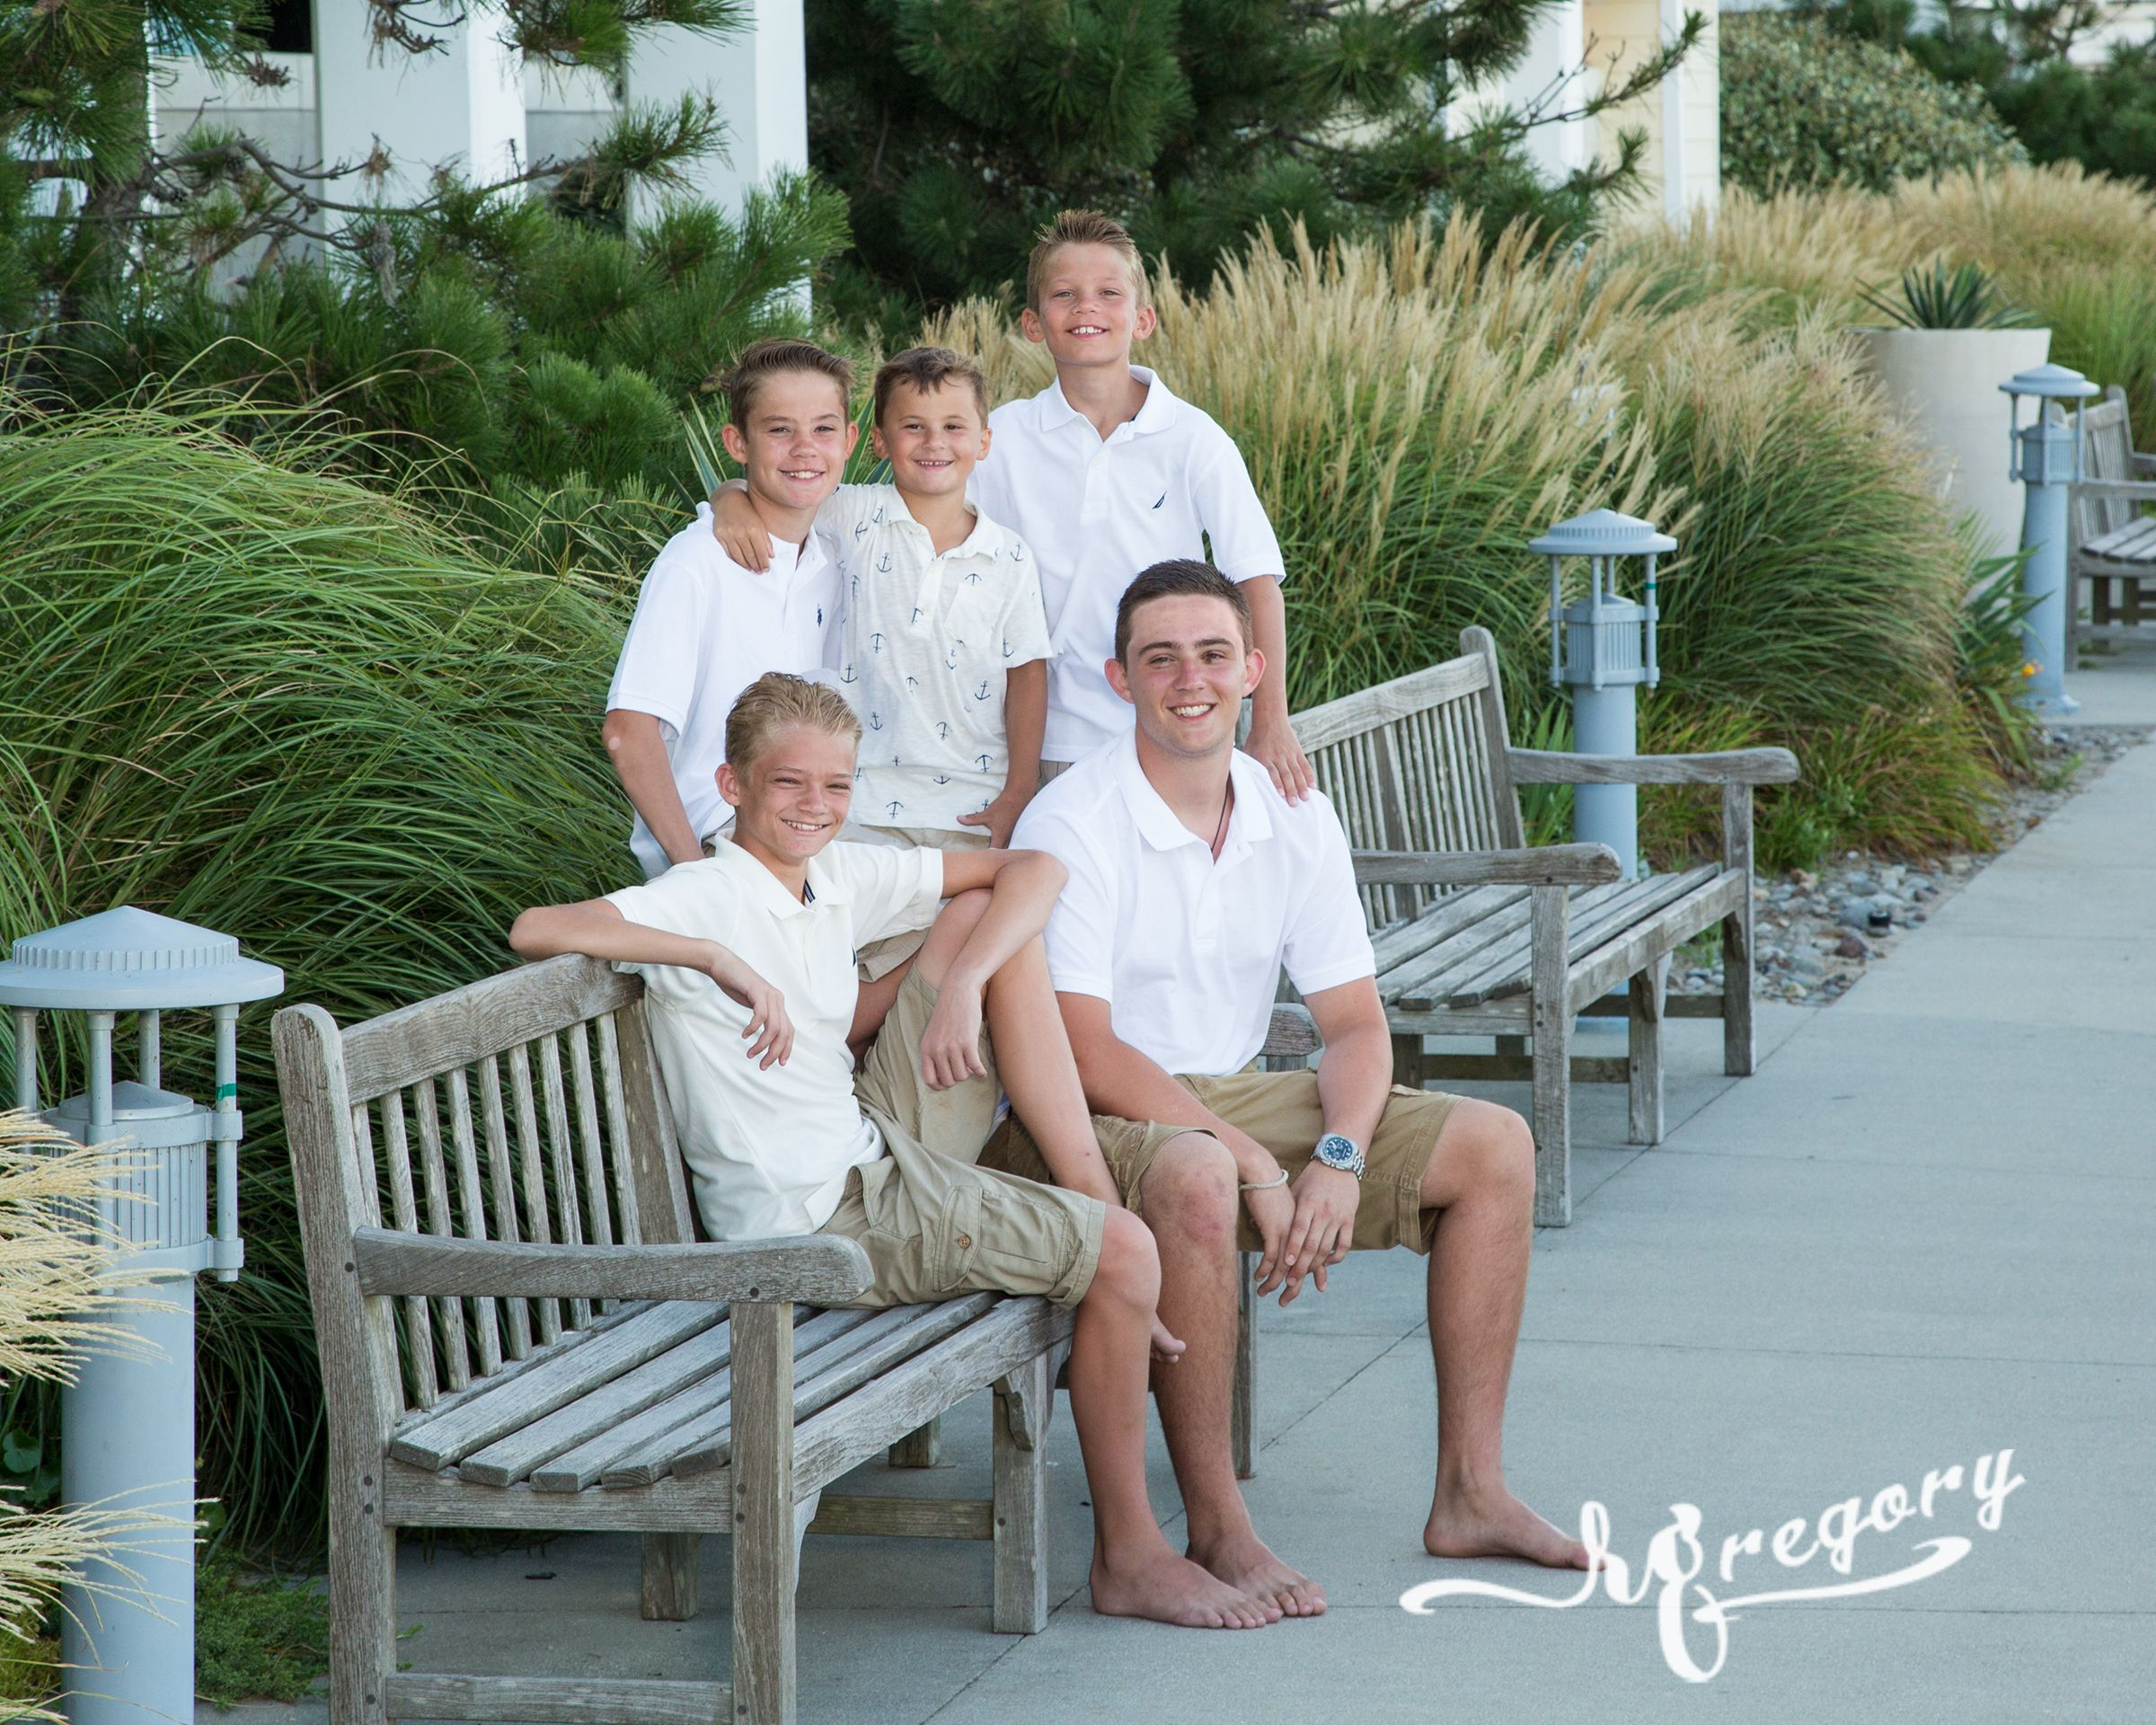 Replogle vacation children photographer family on beach bench